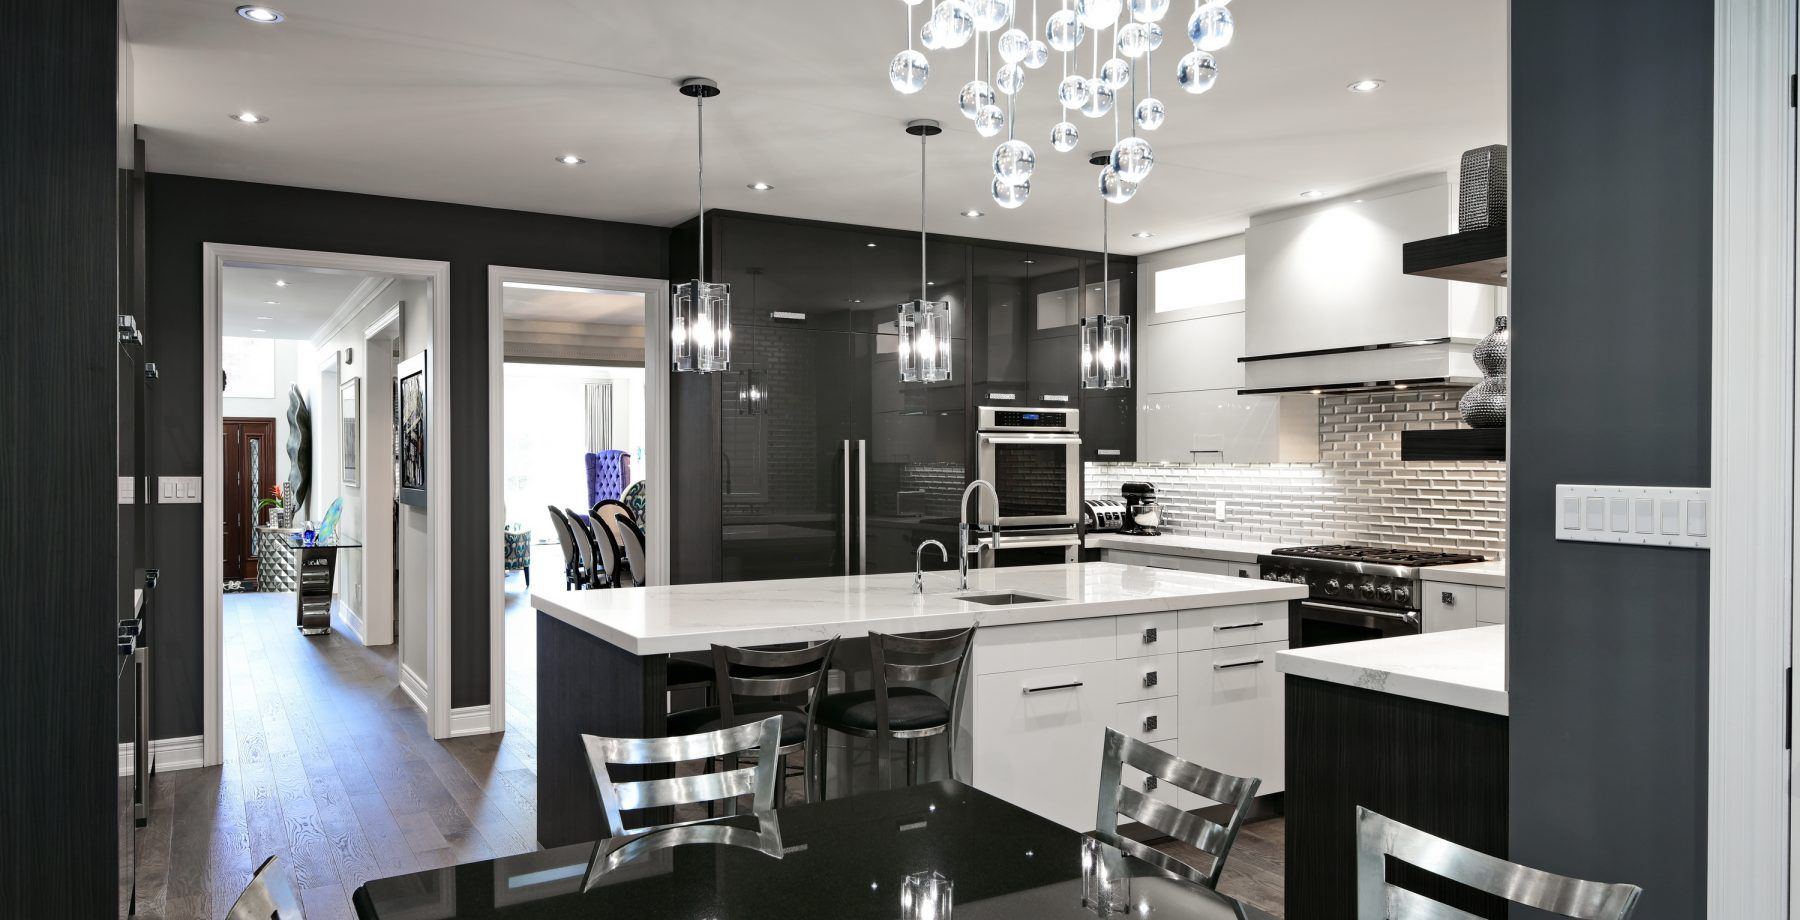 Home Selba Kitchens Baths Is A Canadian Based Company Specializing In Custom Kitchen Design We Custom Kitchens Design Kitchen Design Small Kitchen Design